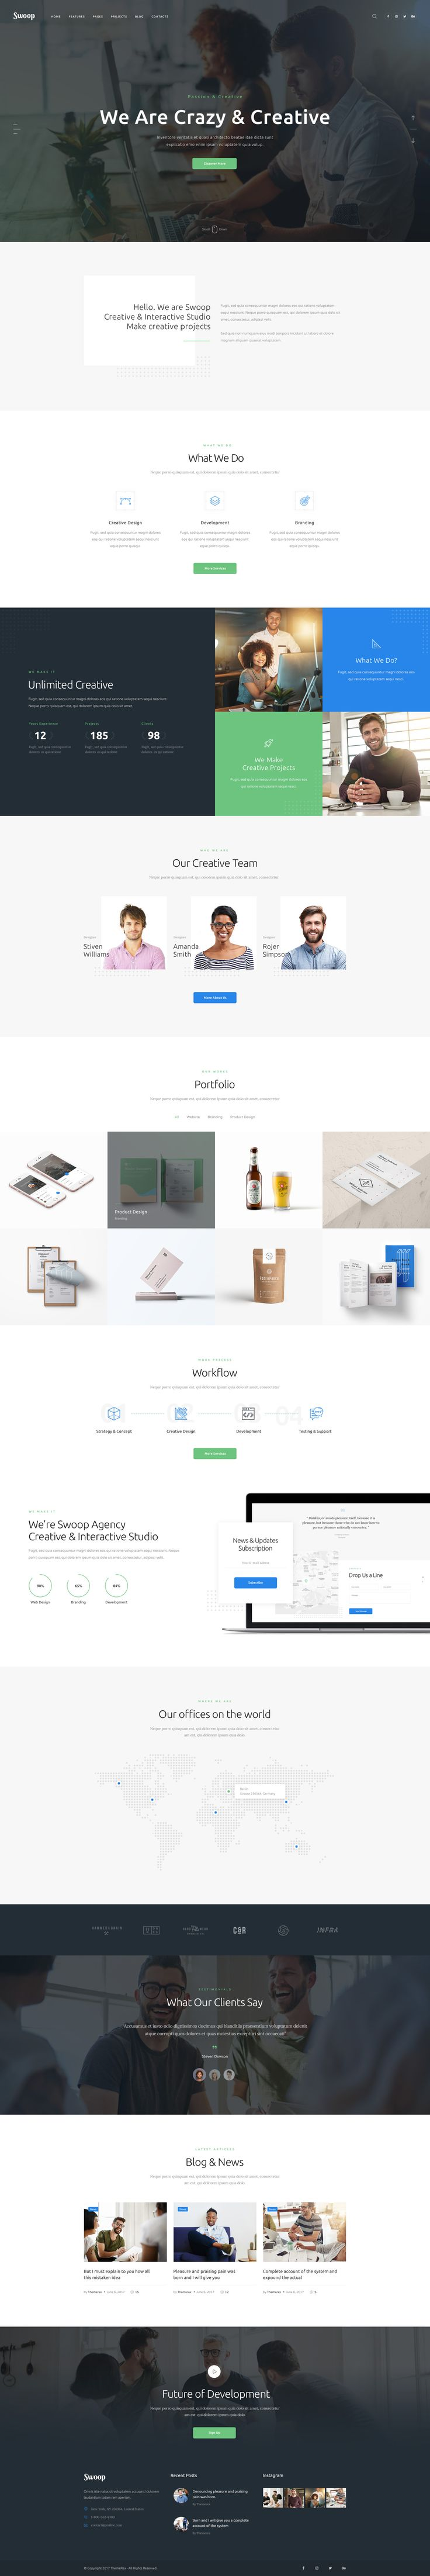 Swoop is a stylish, totally responsive, and easy-to-use WordPress theme best suited for a web design and creative agency, web designer's portfolio, marketing and advertising firm, etc. The theme perfectly fits for both, personal and corporate website.